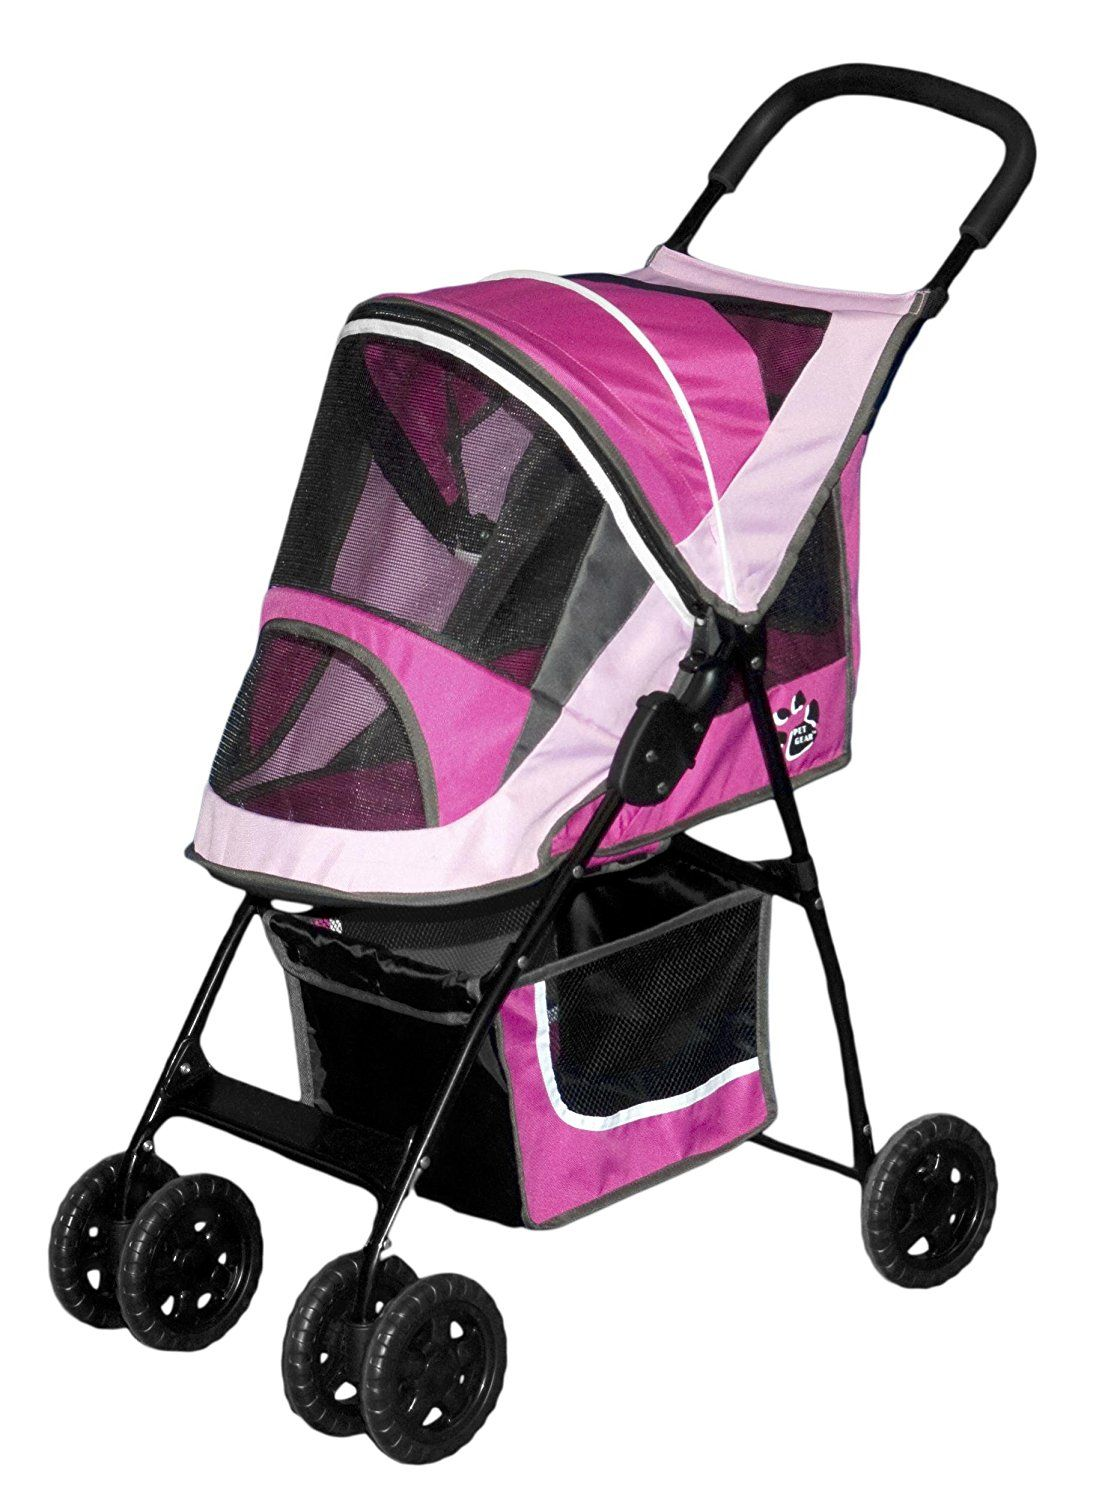 Pet Gear Sport Pet Stroller for Cats and Dogs Up to 20